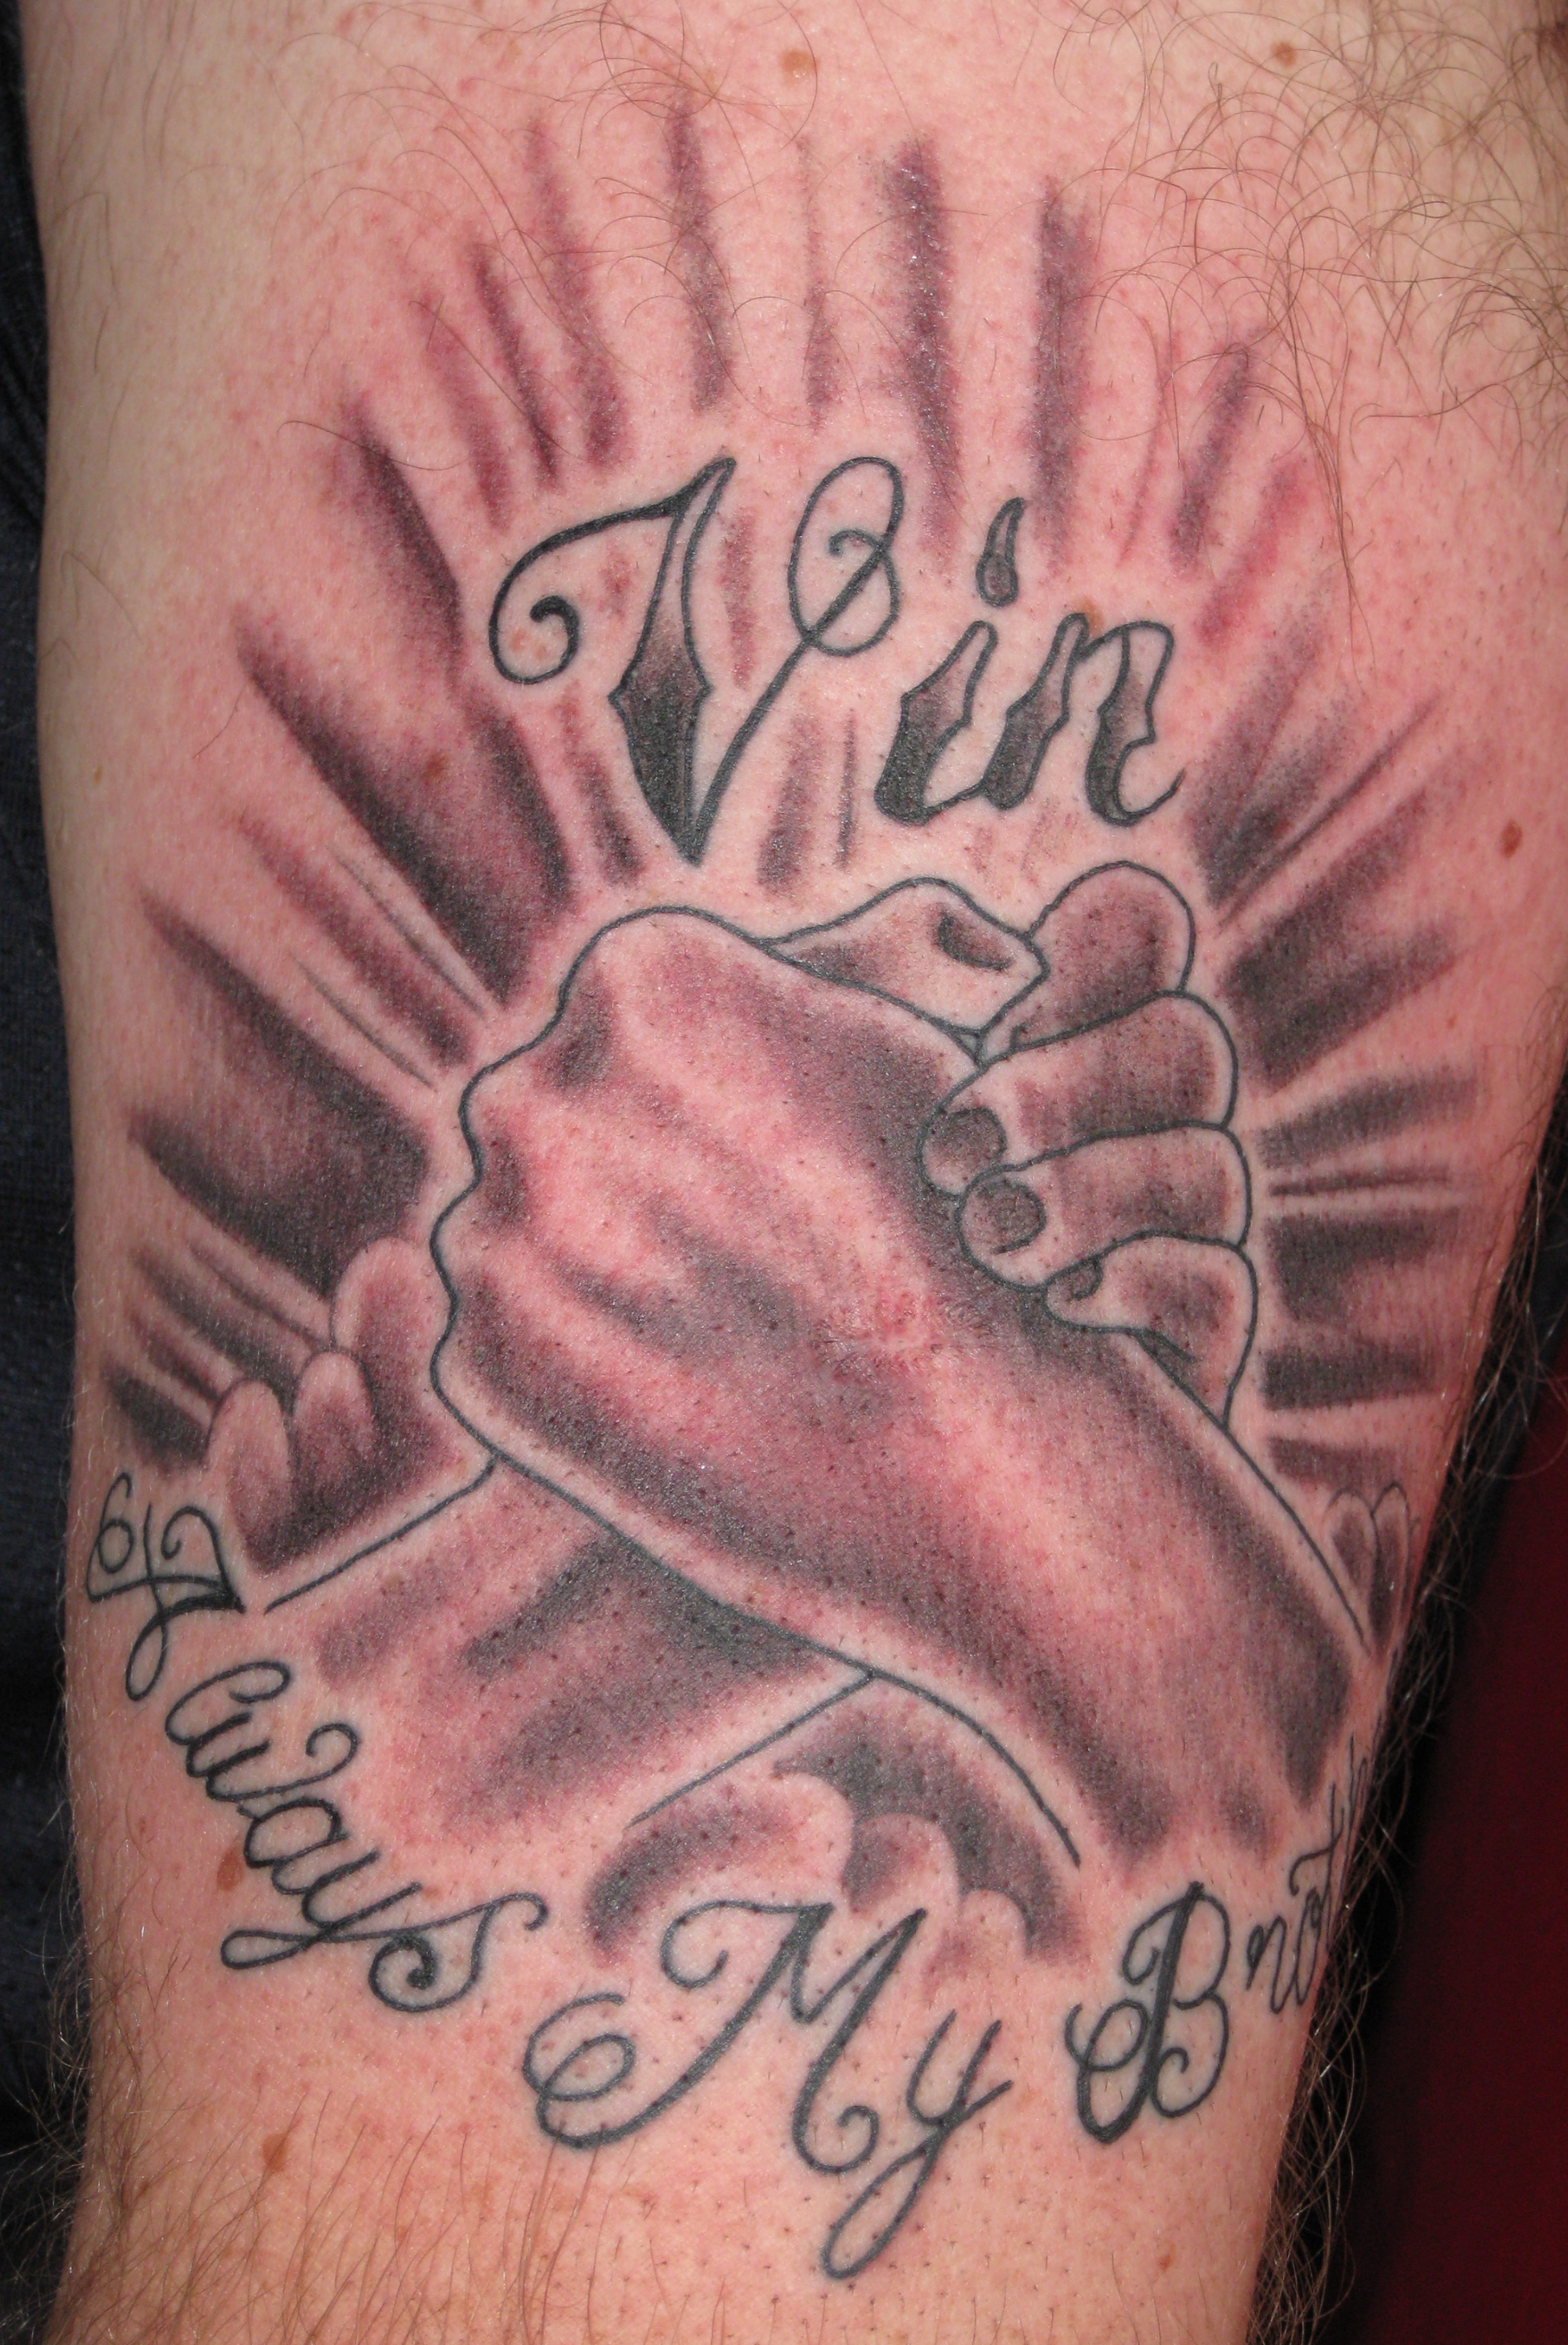 Love irish st tattoo for Brotherly love tattoo